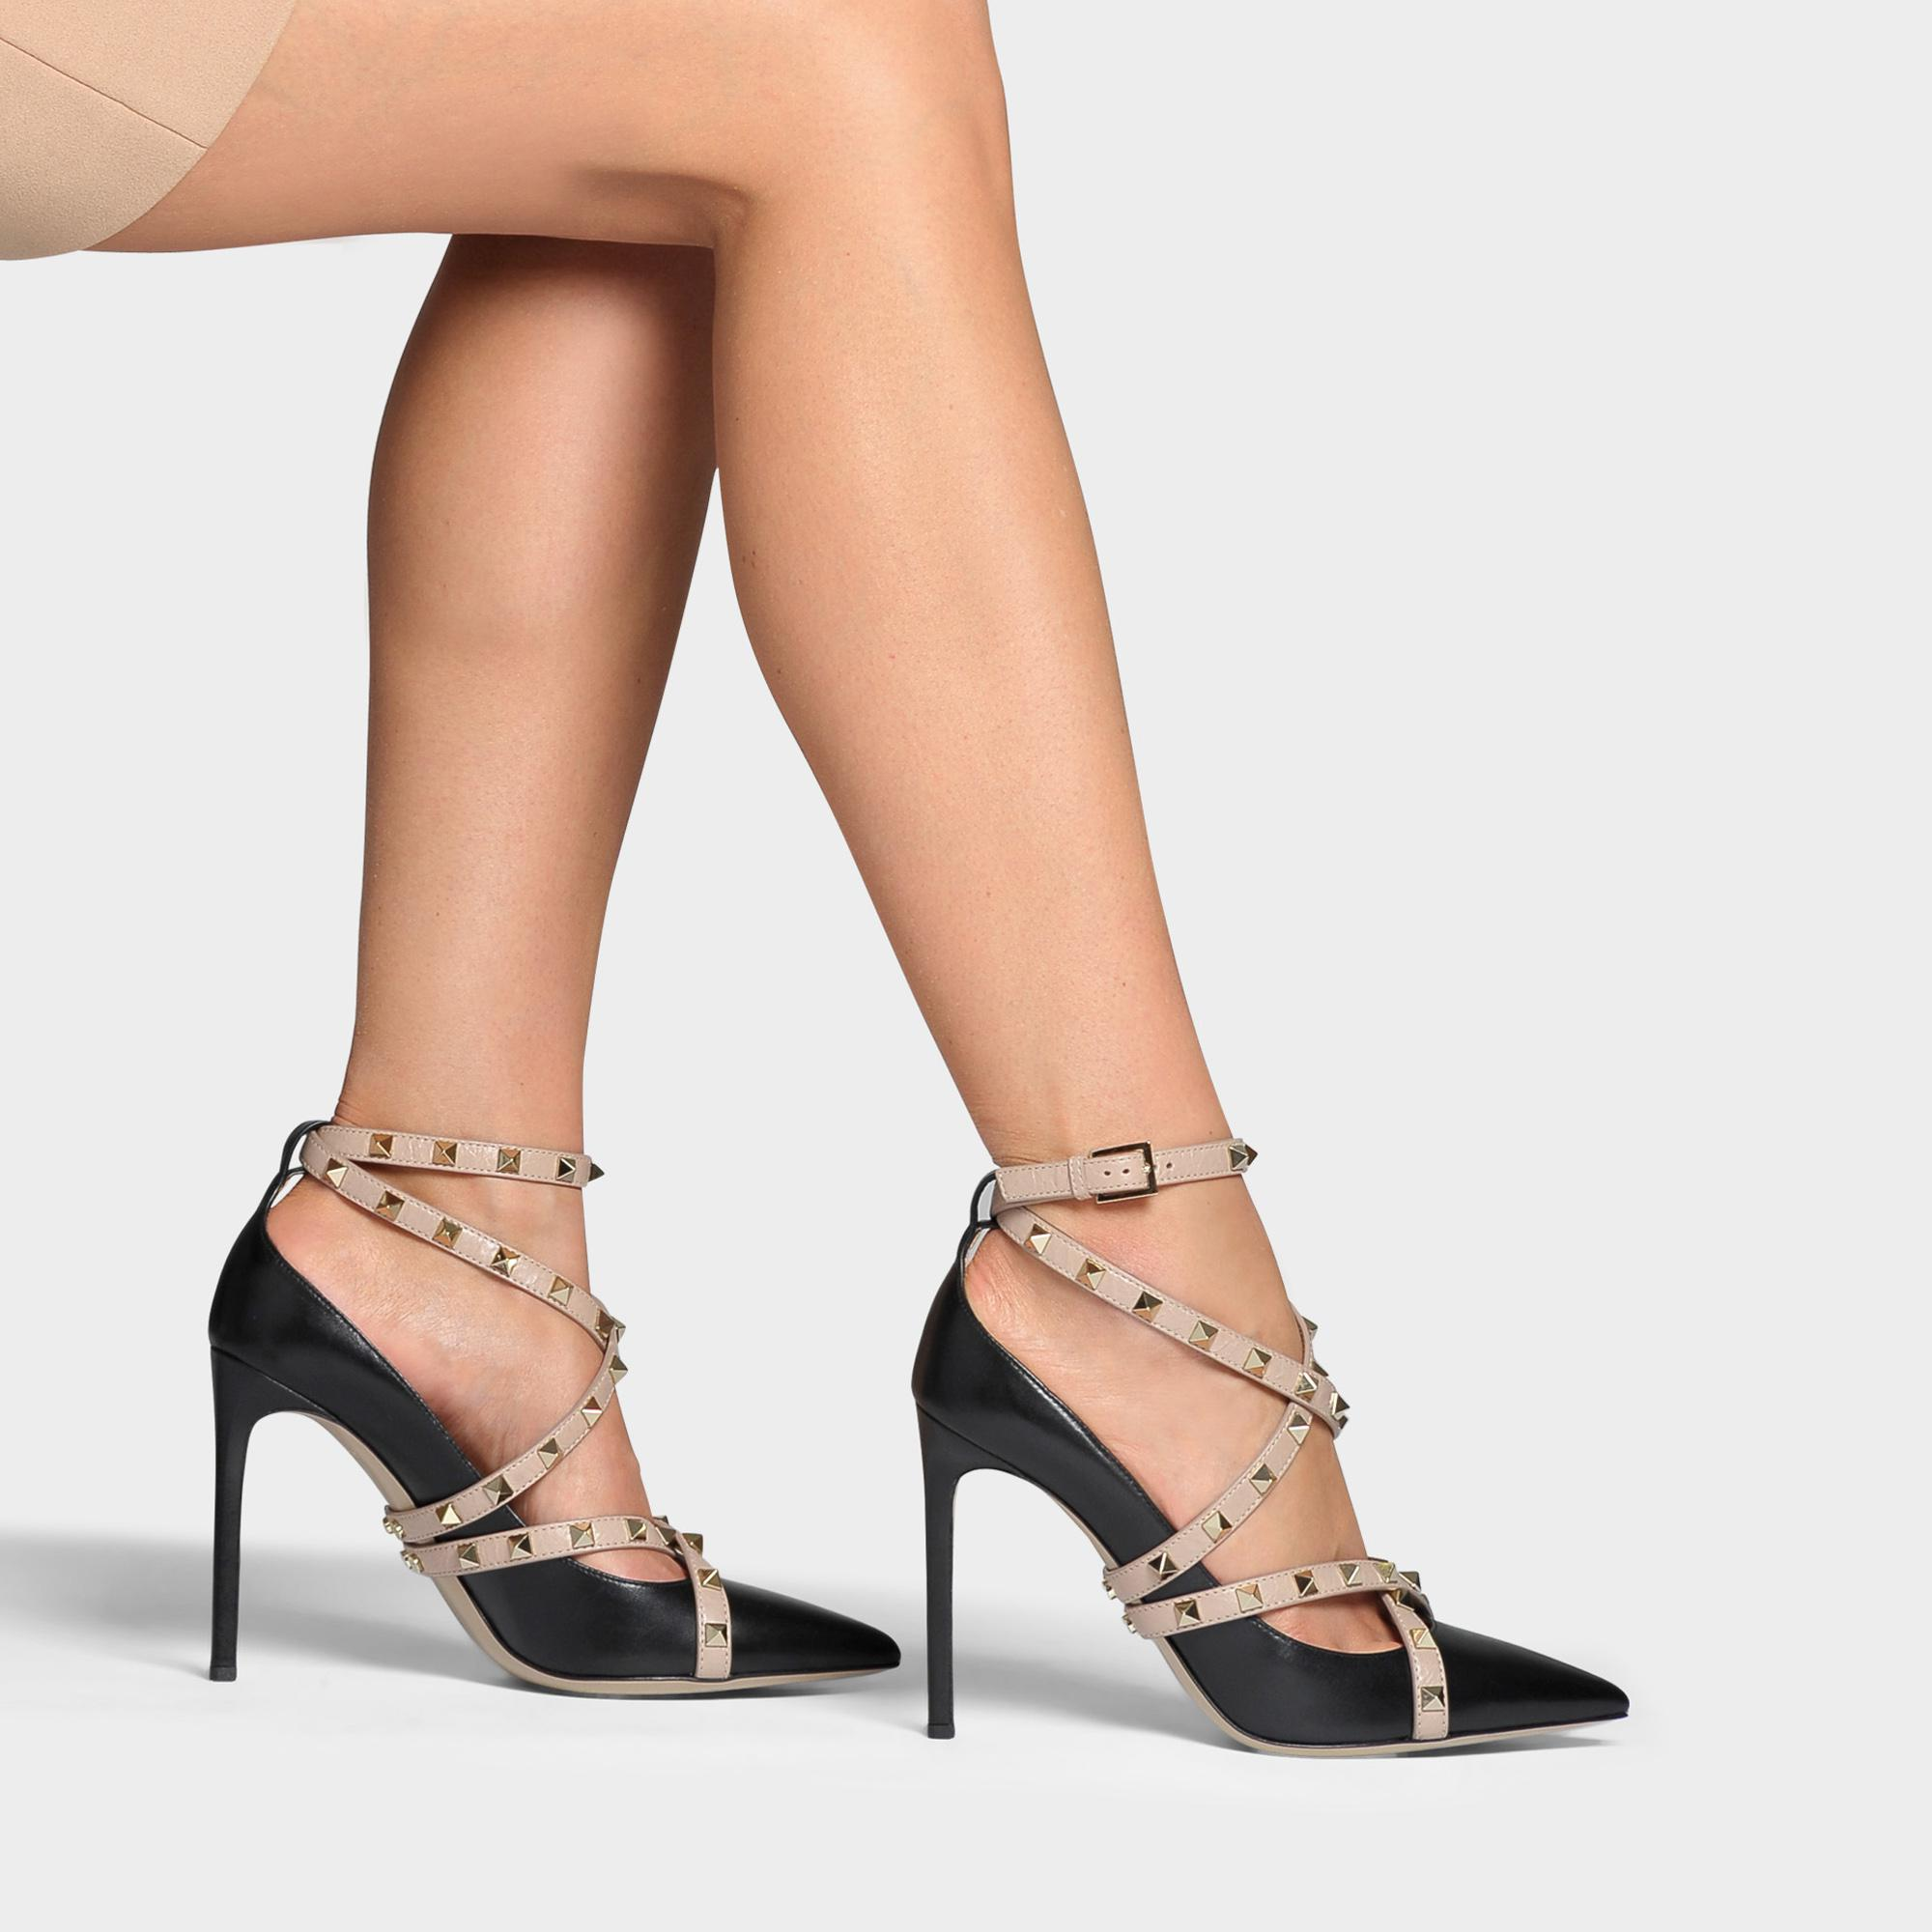 Rockstud Pointed Pumps with Ankle Strap in Black and Poudre Calfskin Valentino L2c3XHE